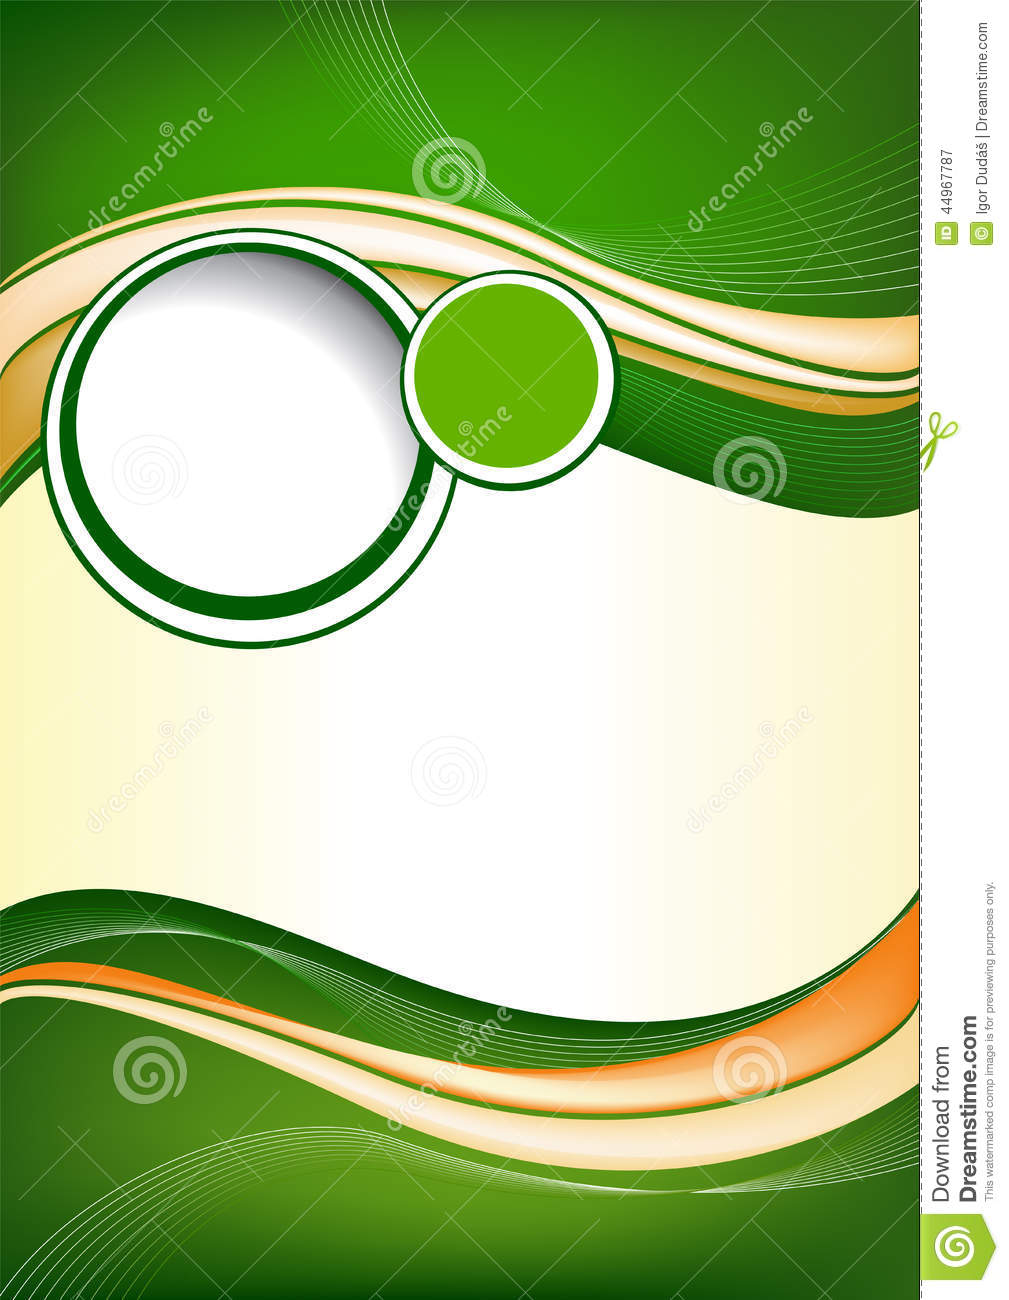 Abstract green background design stock vector image for Background brochure templates